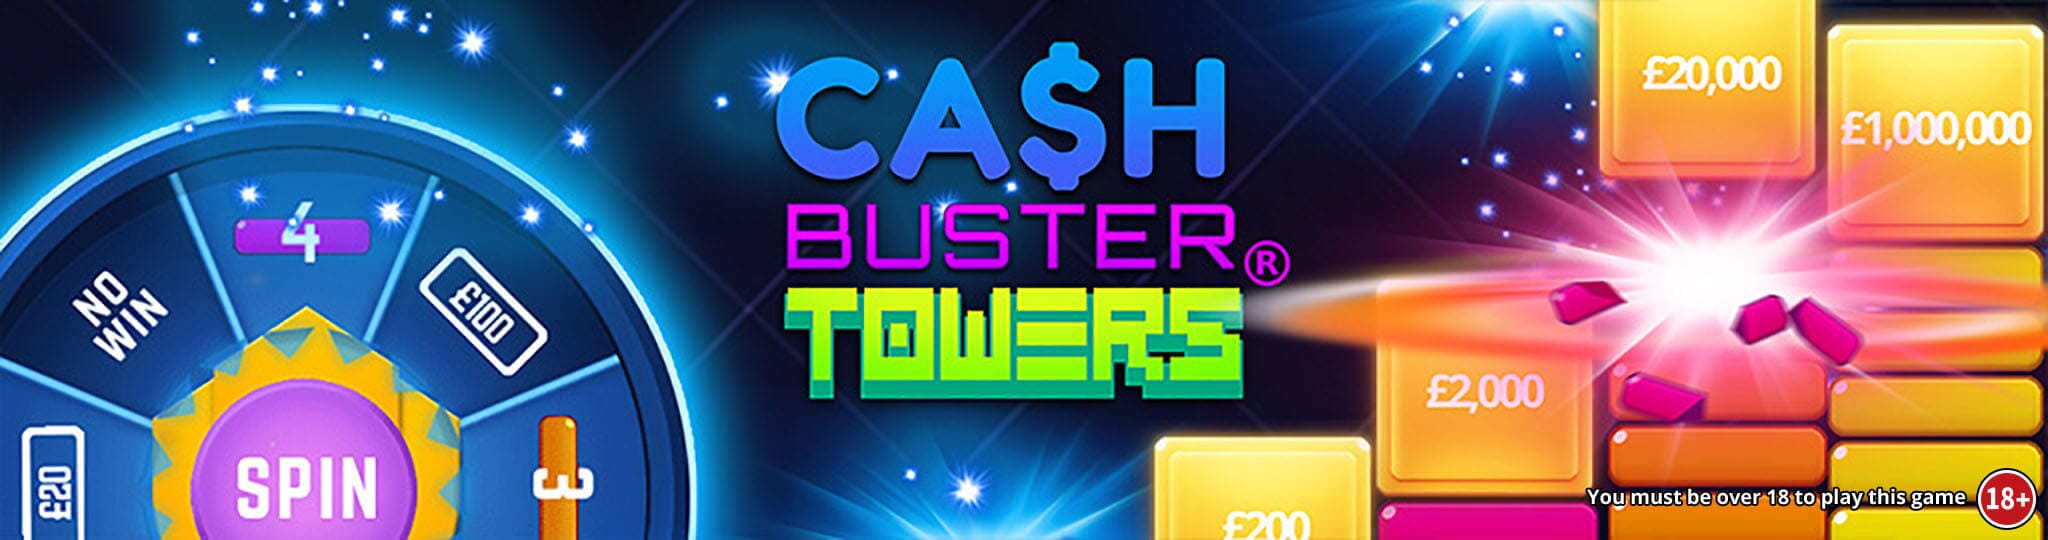 Cash Buster Towers Slot Review